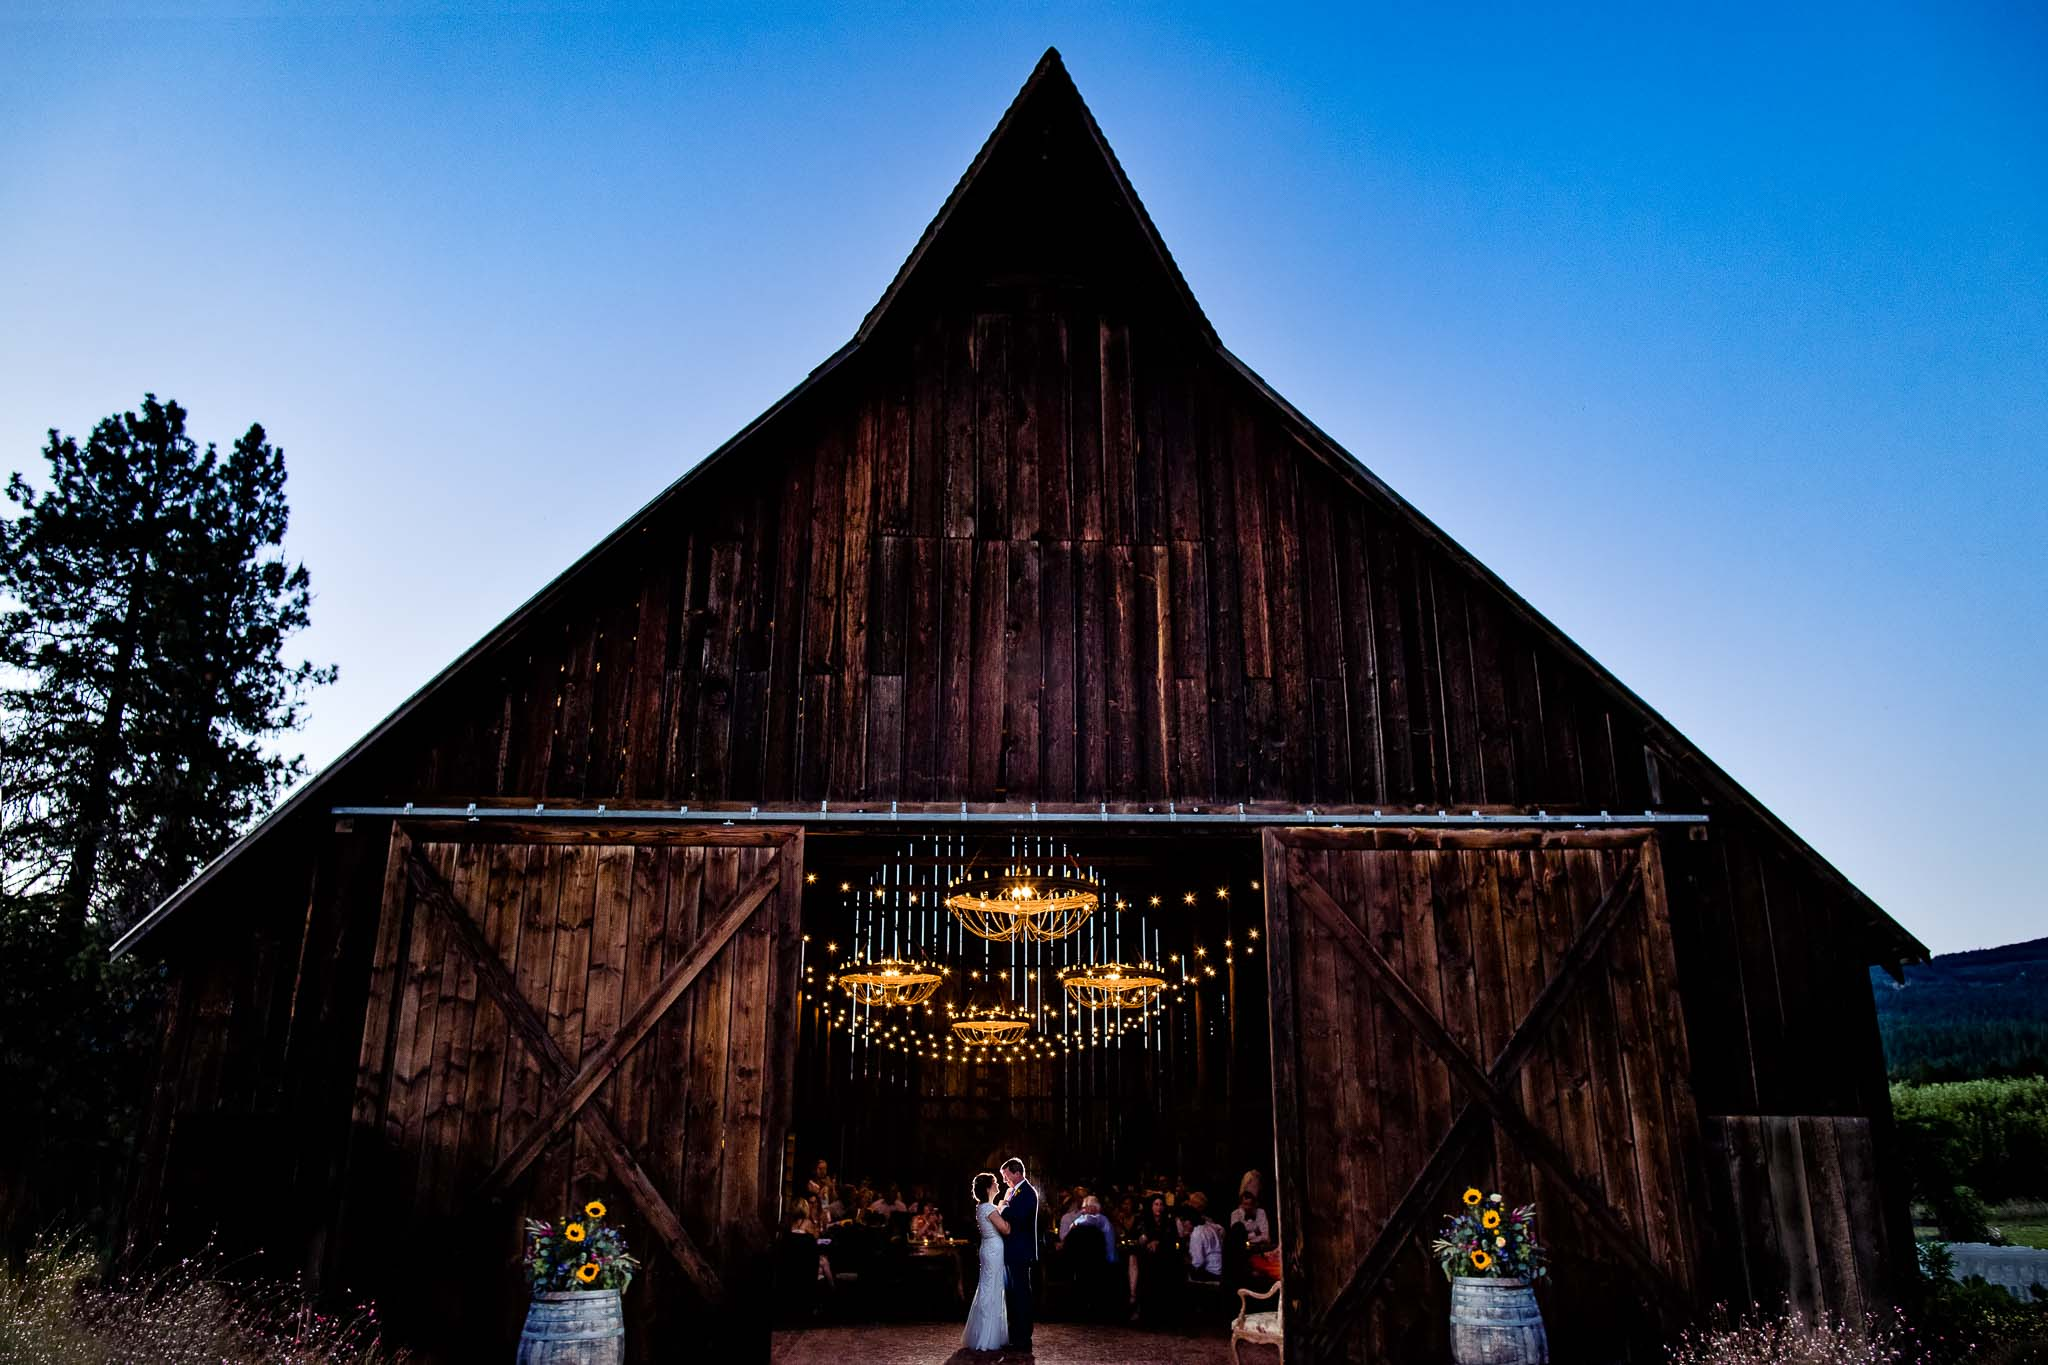 First dance with lovely backlight at Tin Roof Barn in Washington